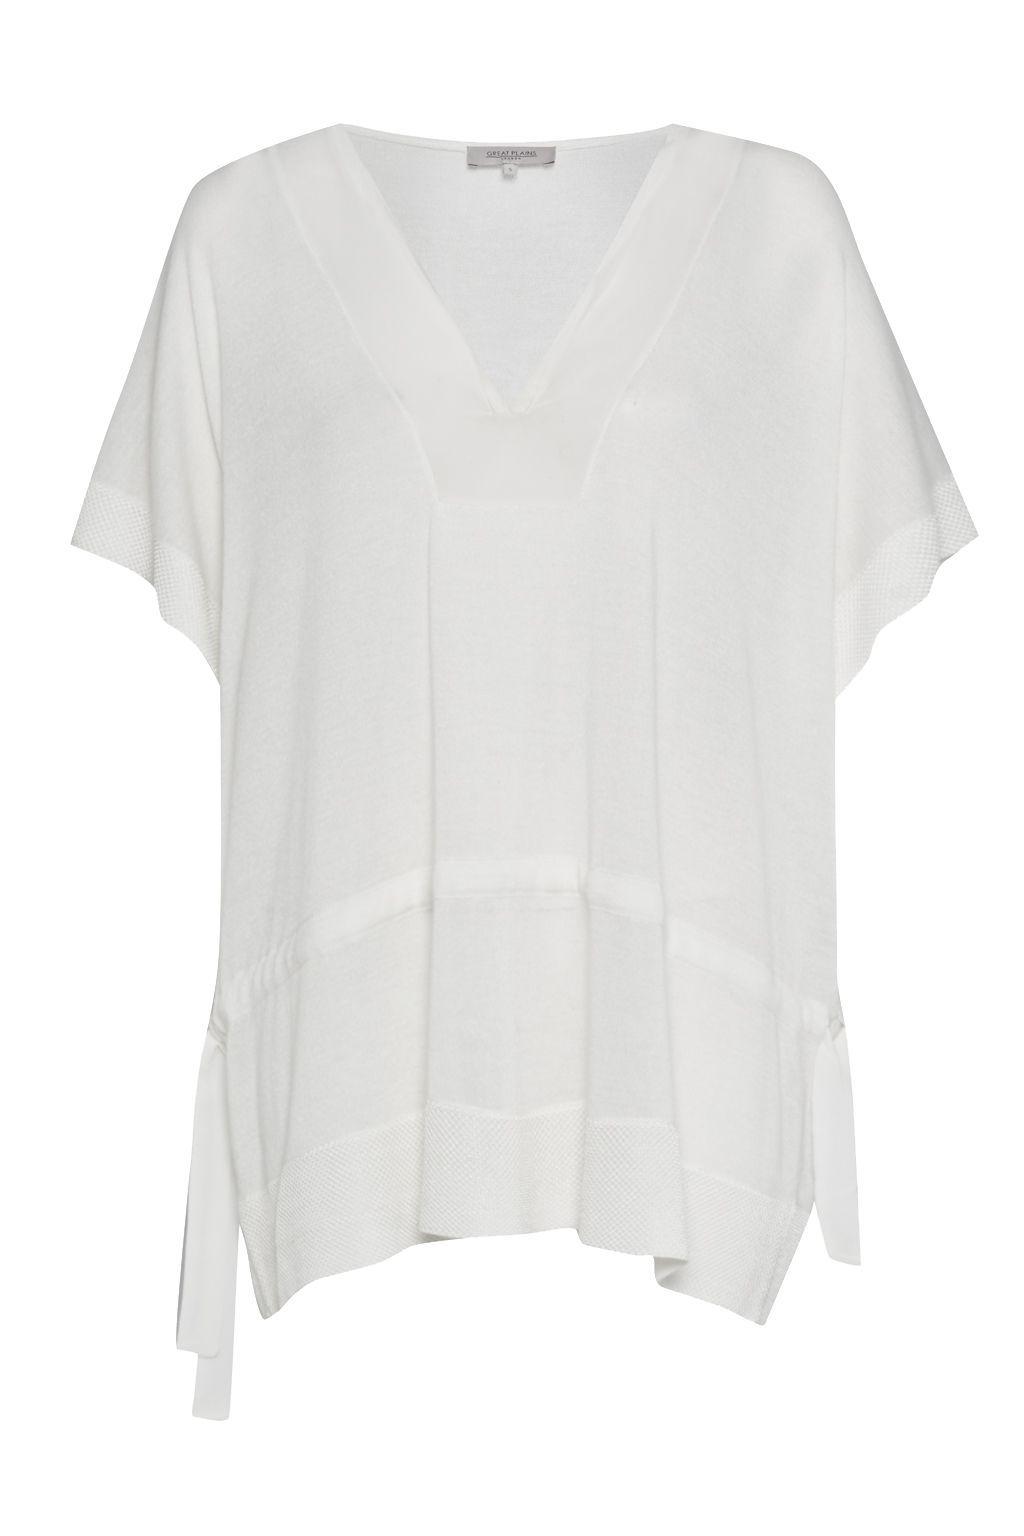 Great Plains Mabel Mix Drawstring Tunic Top, White